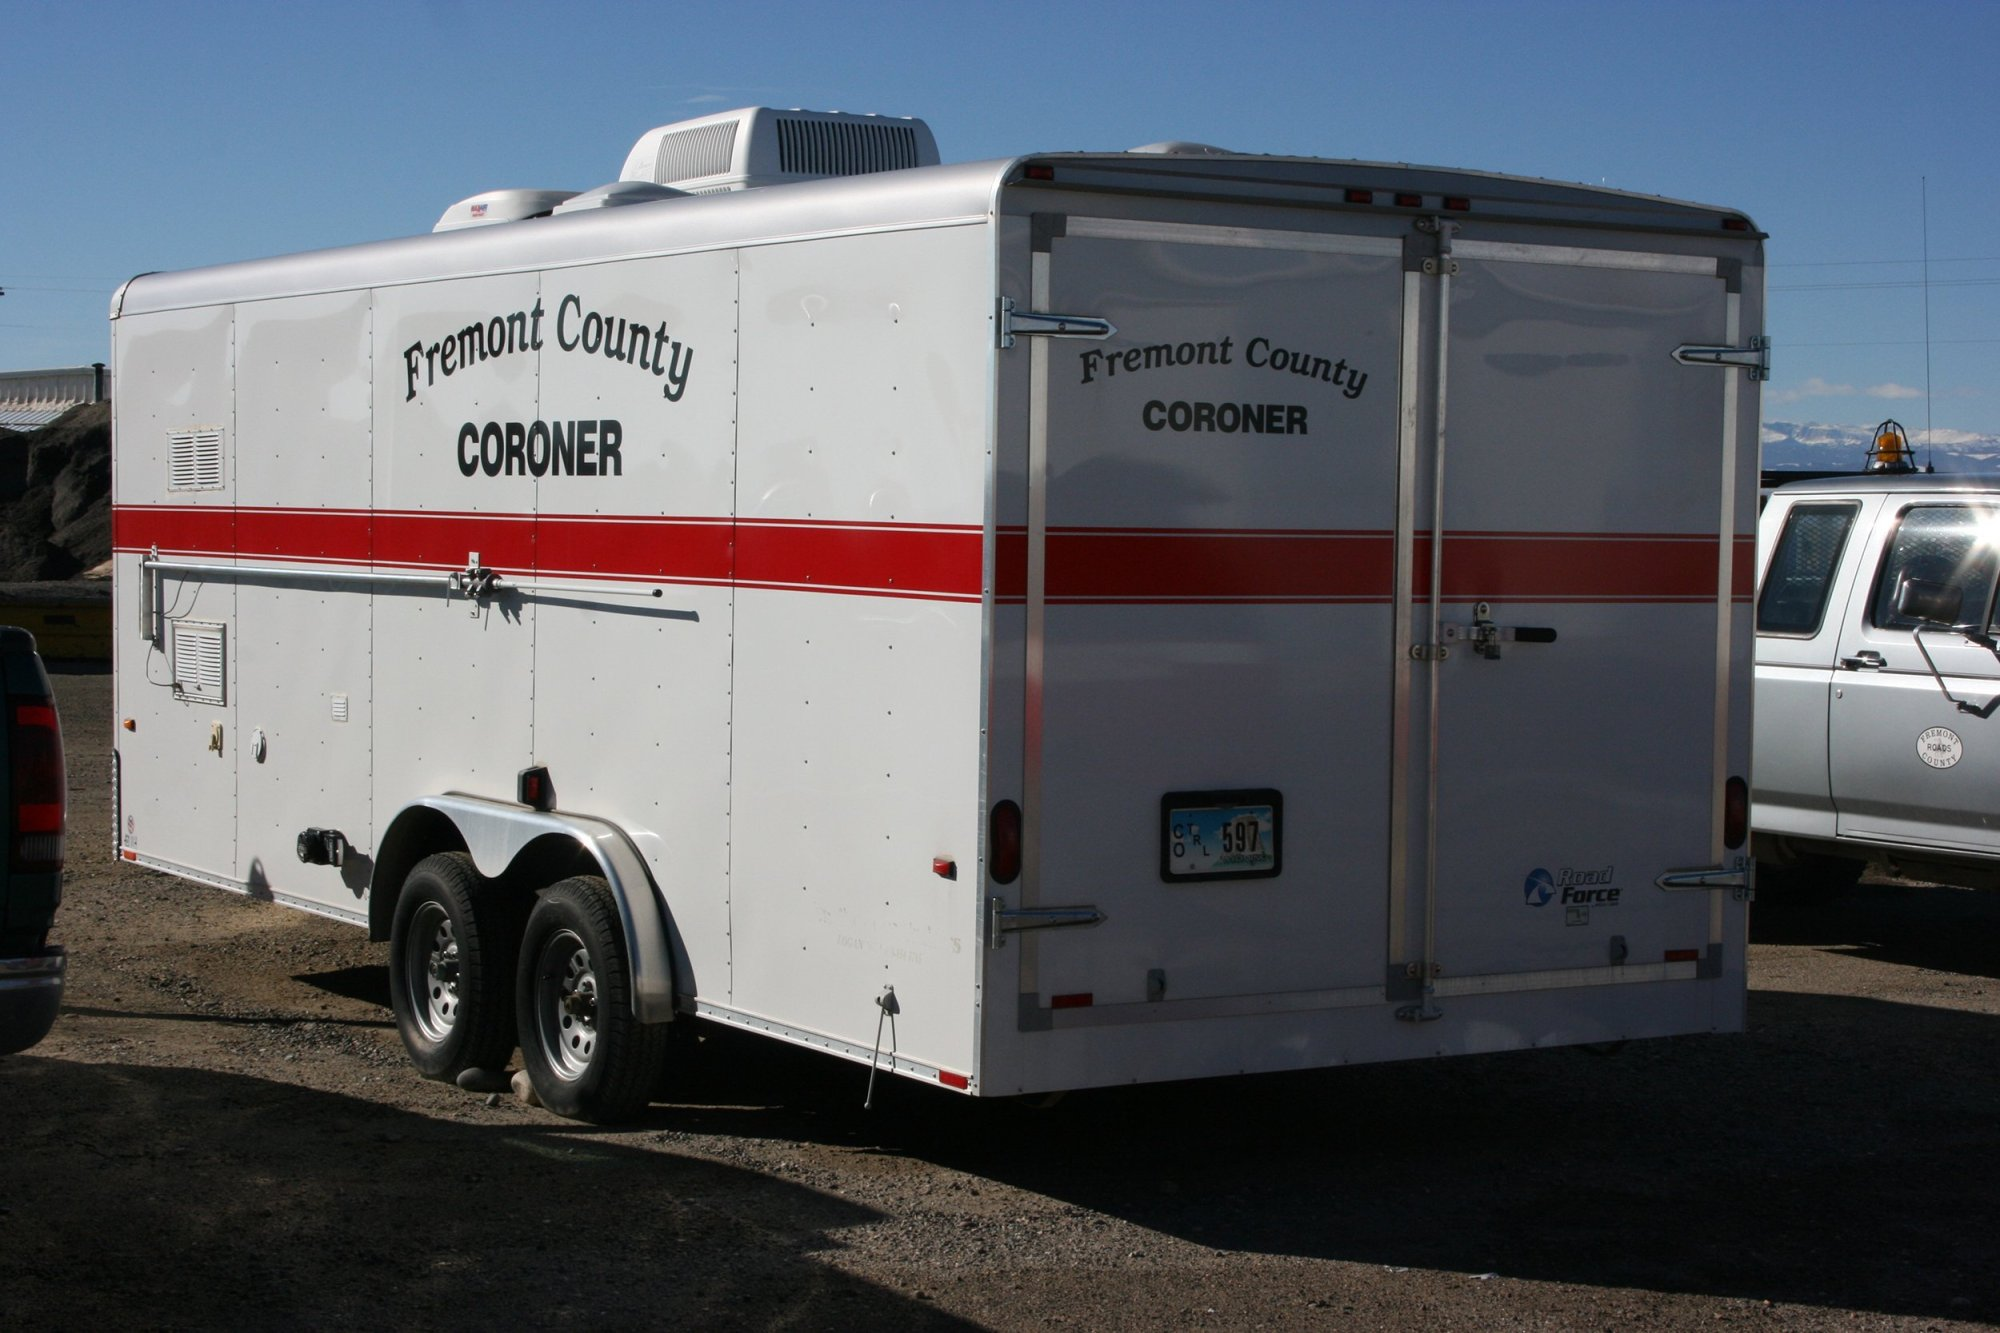 A coroner's vehicle is seen in Wyoming on April 6, 2020. (Fremont County Coroner)